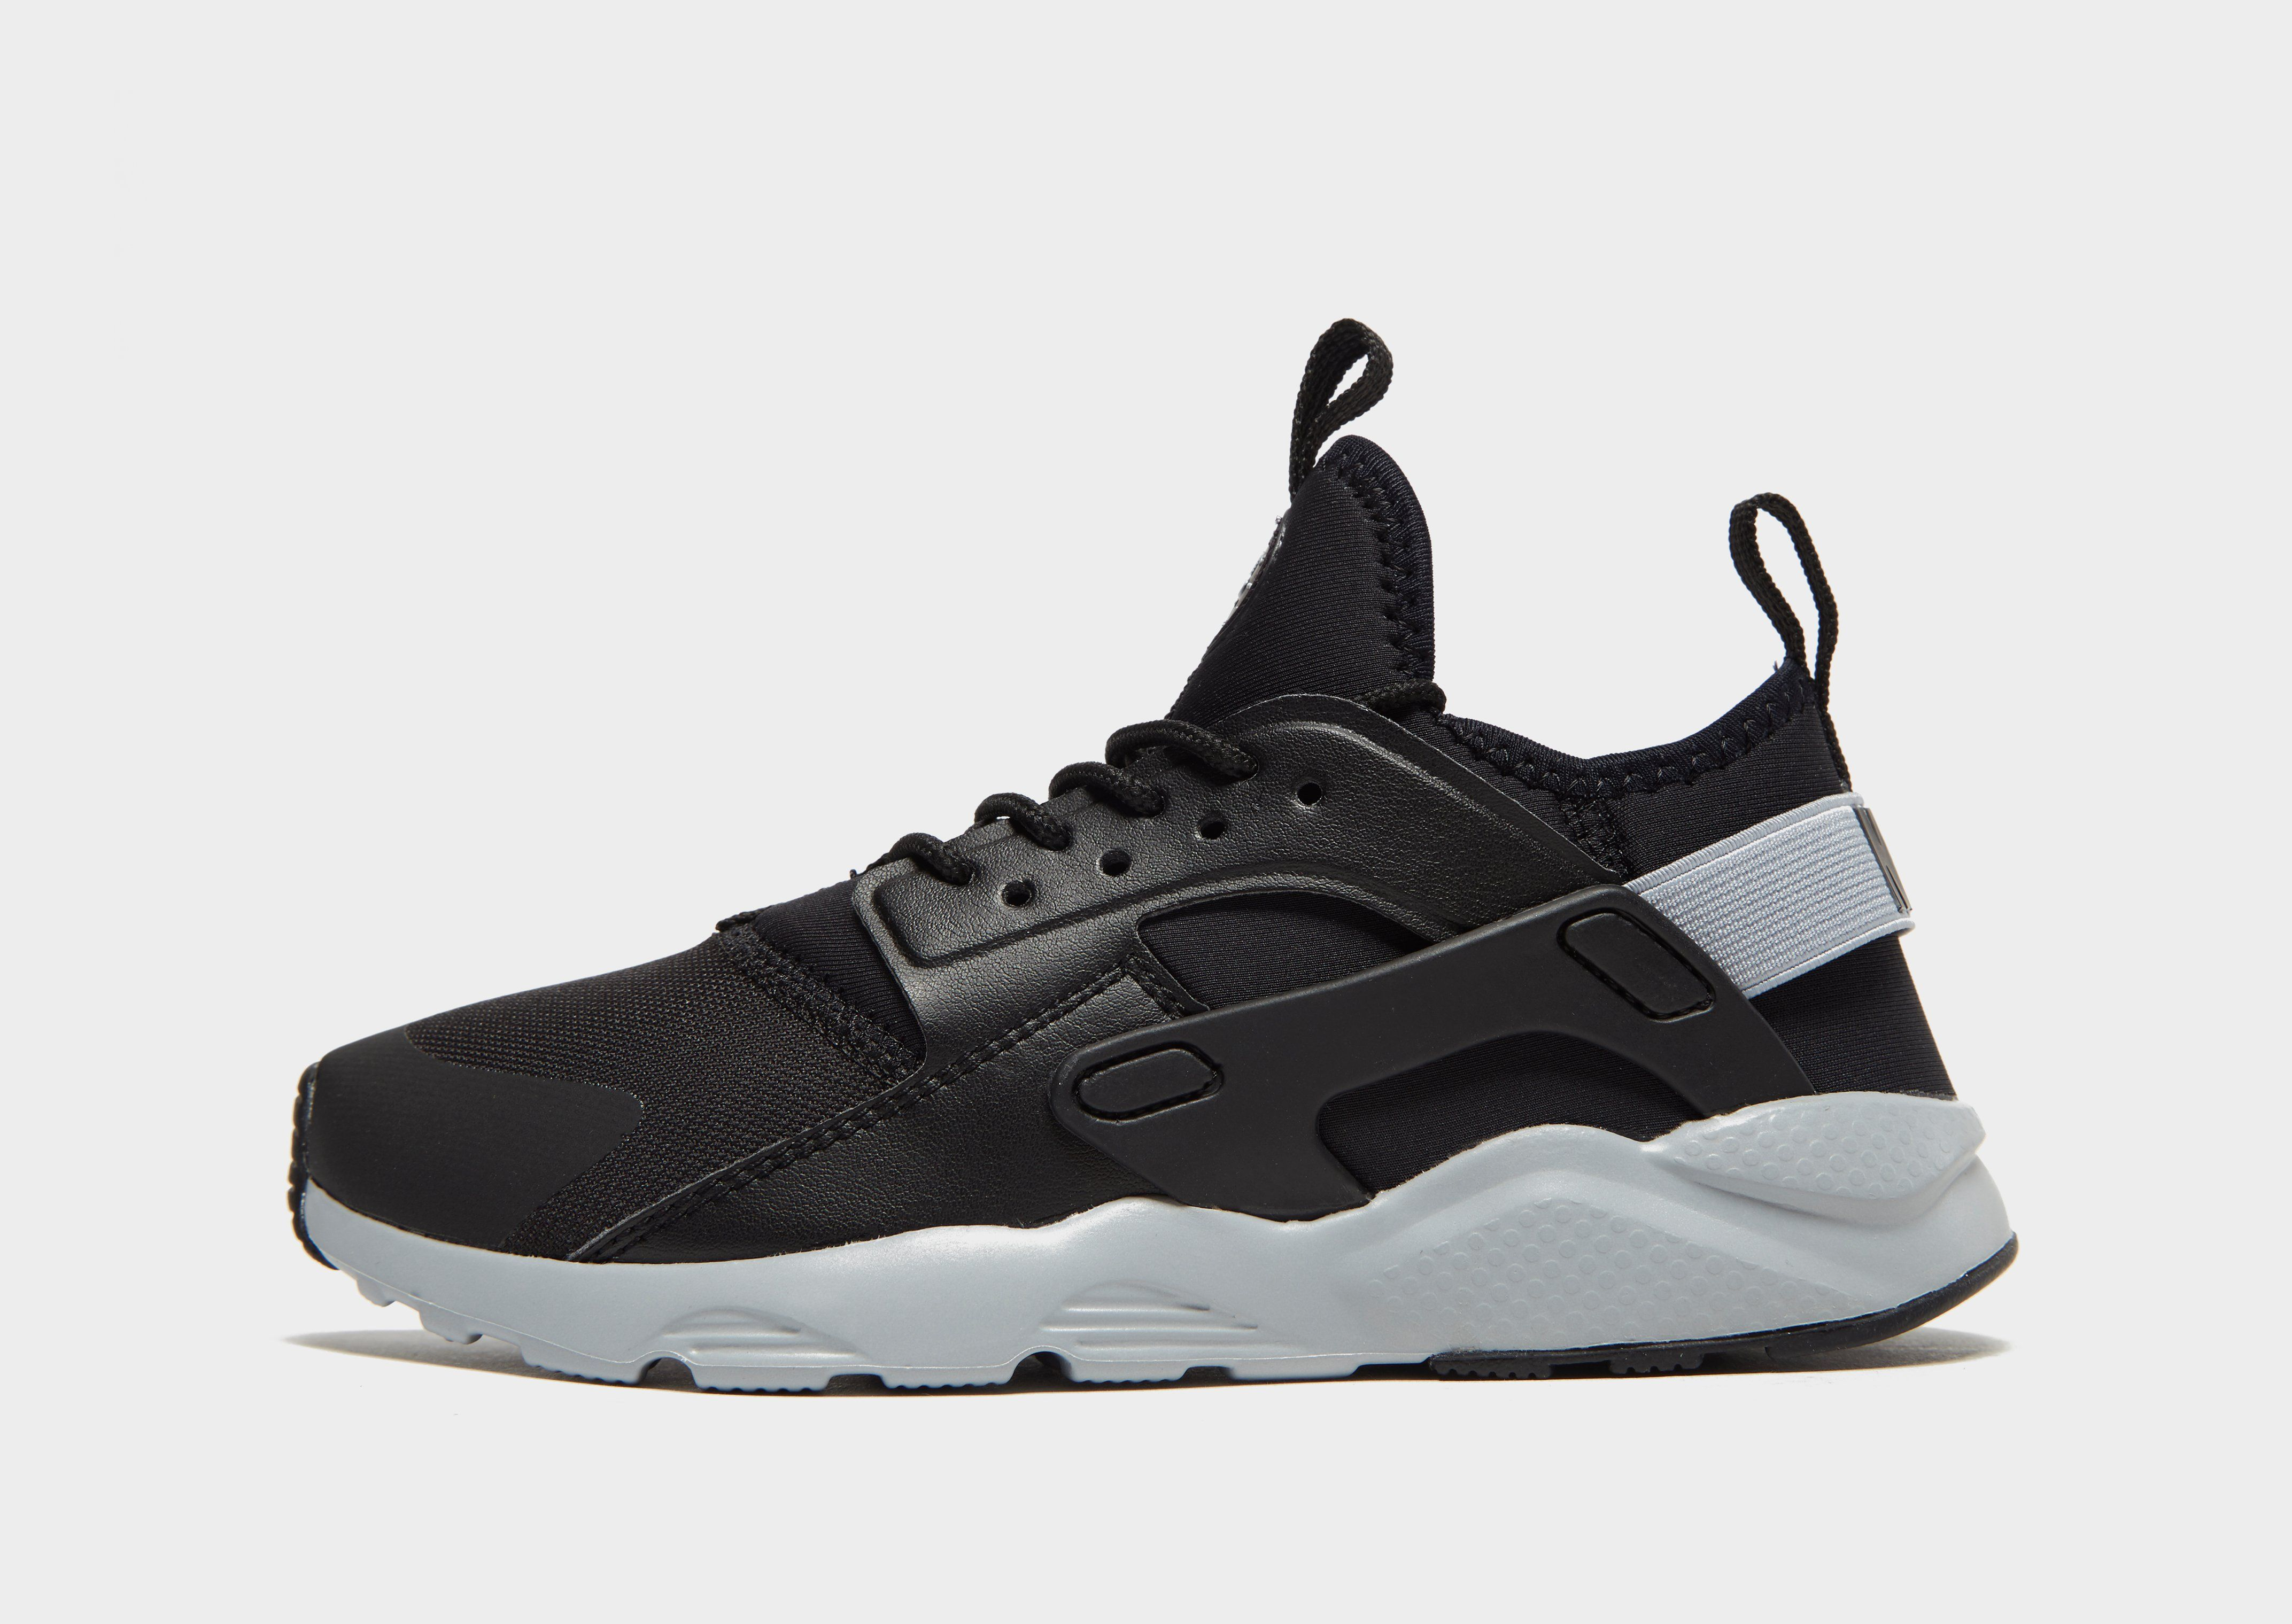 f41c57fc15fa1 Nike Air Huarache Ultra Children